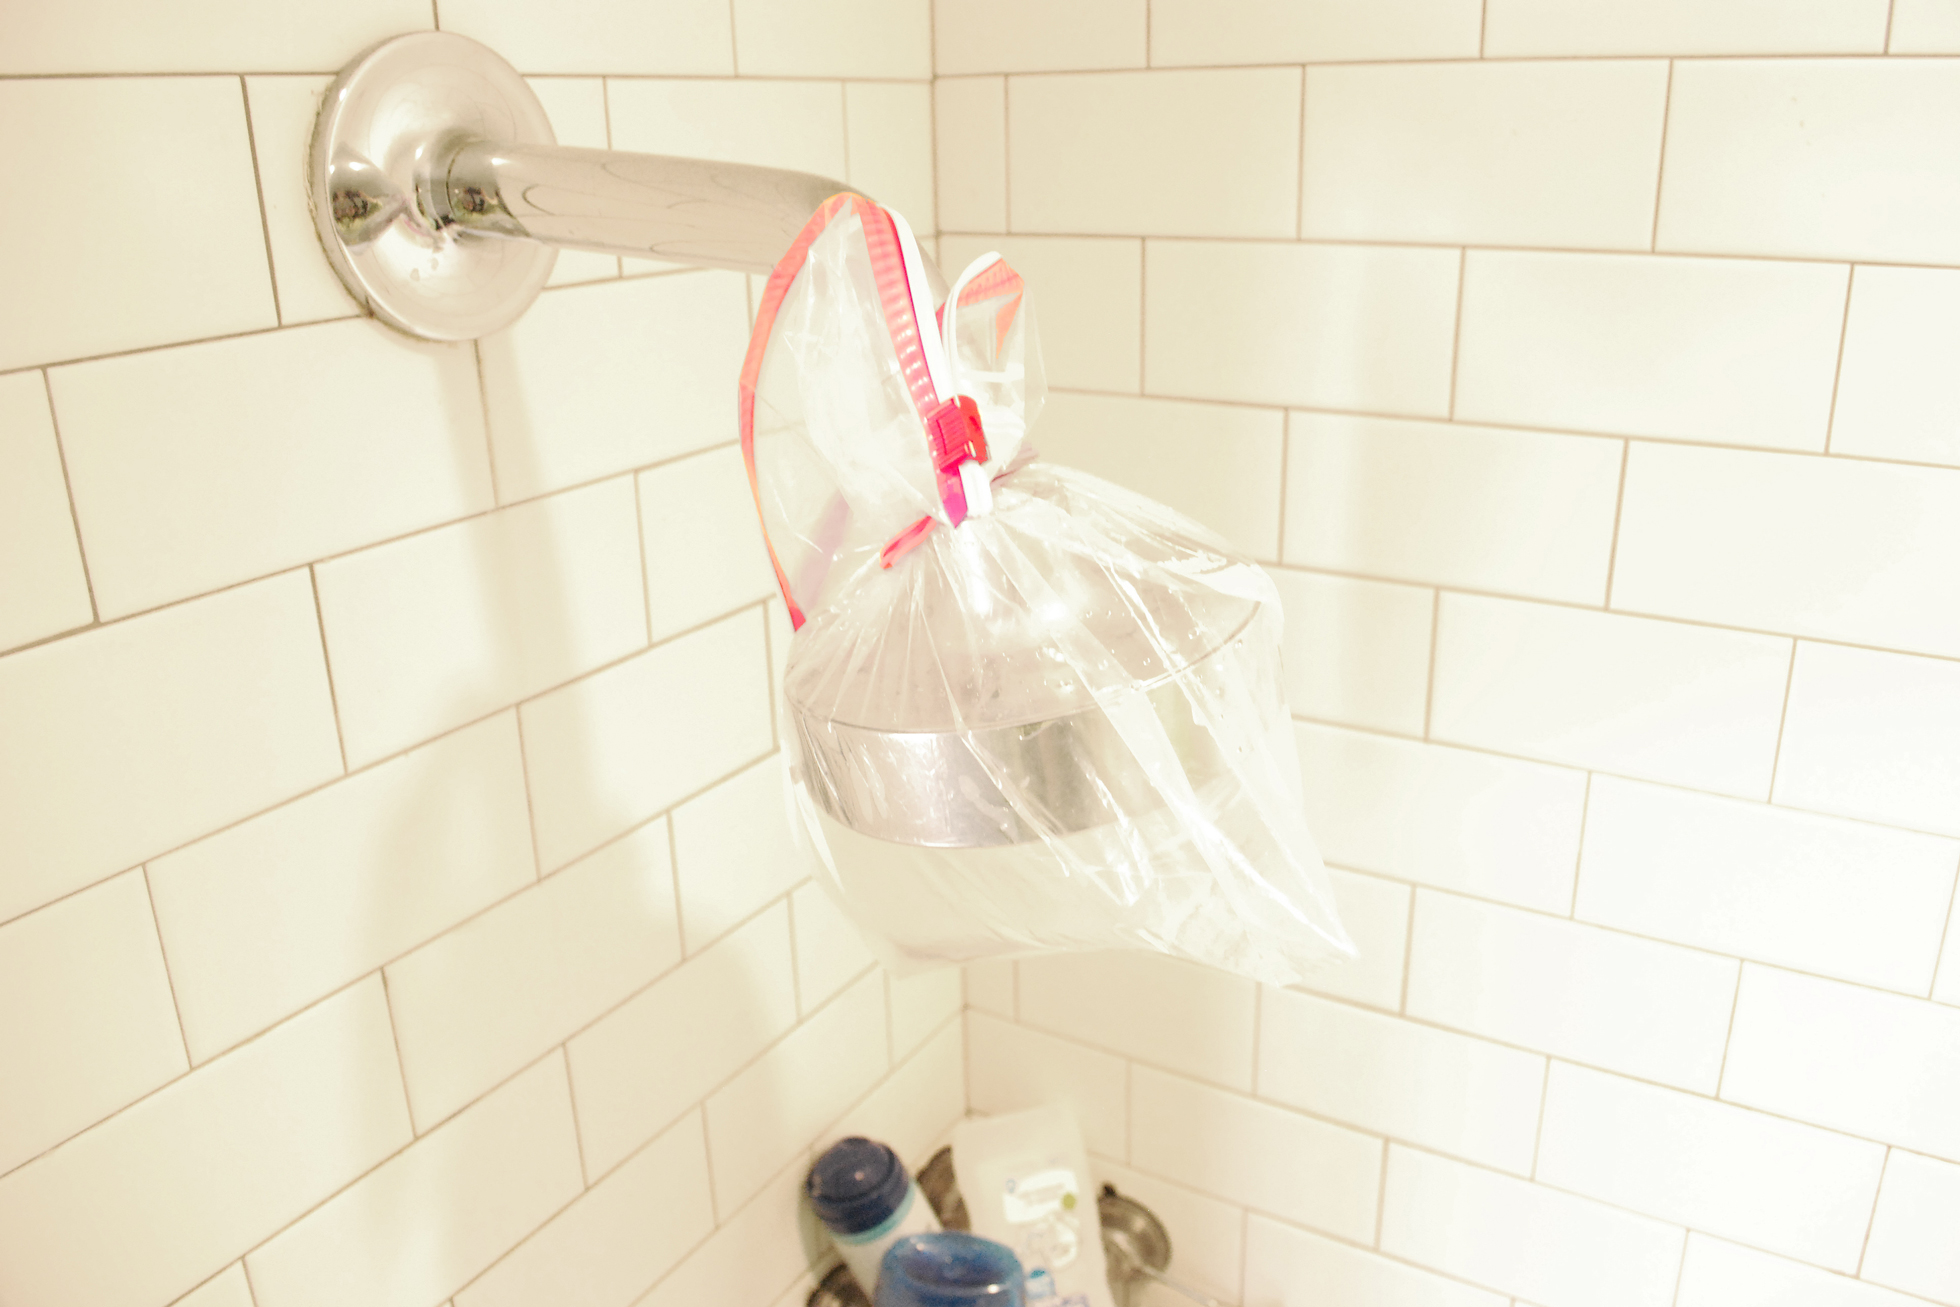 Cleaning a showerhead with vinegar